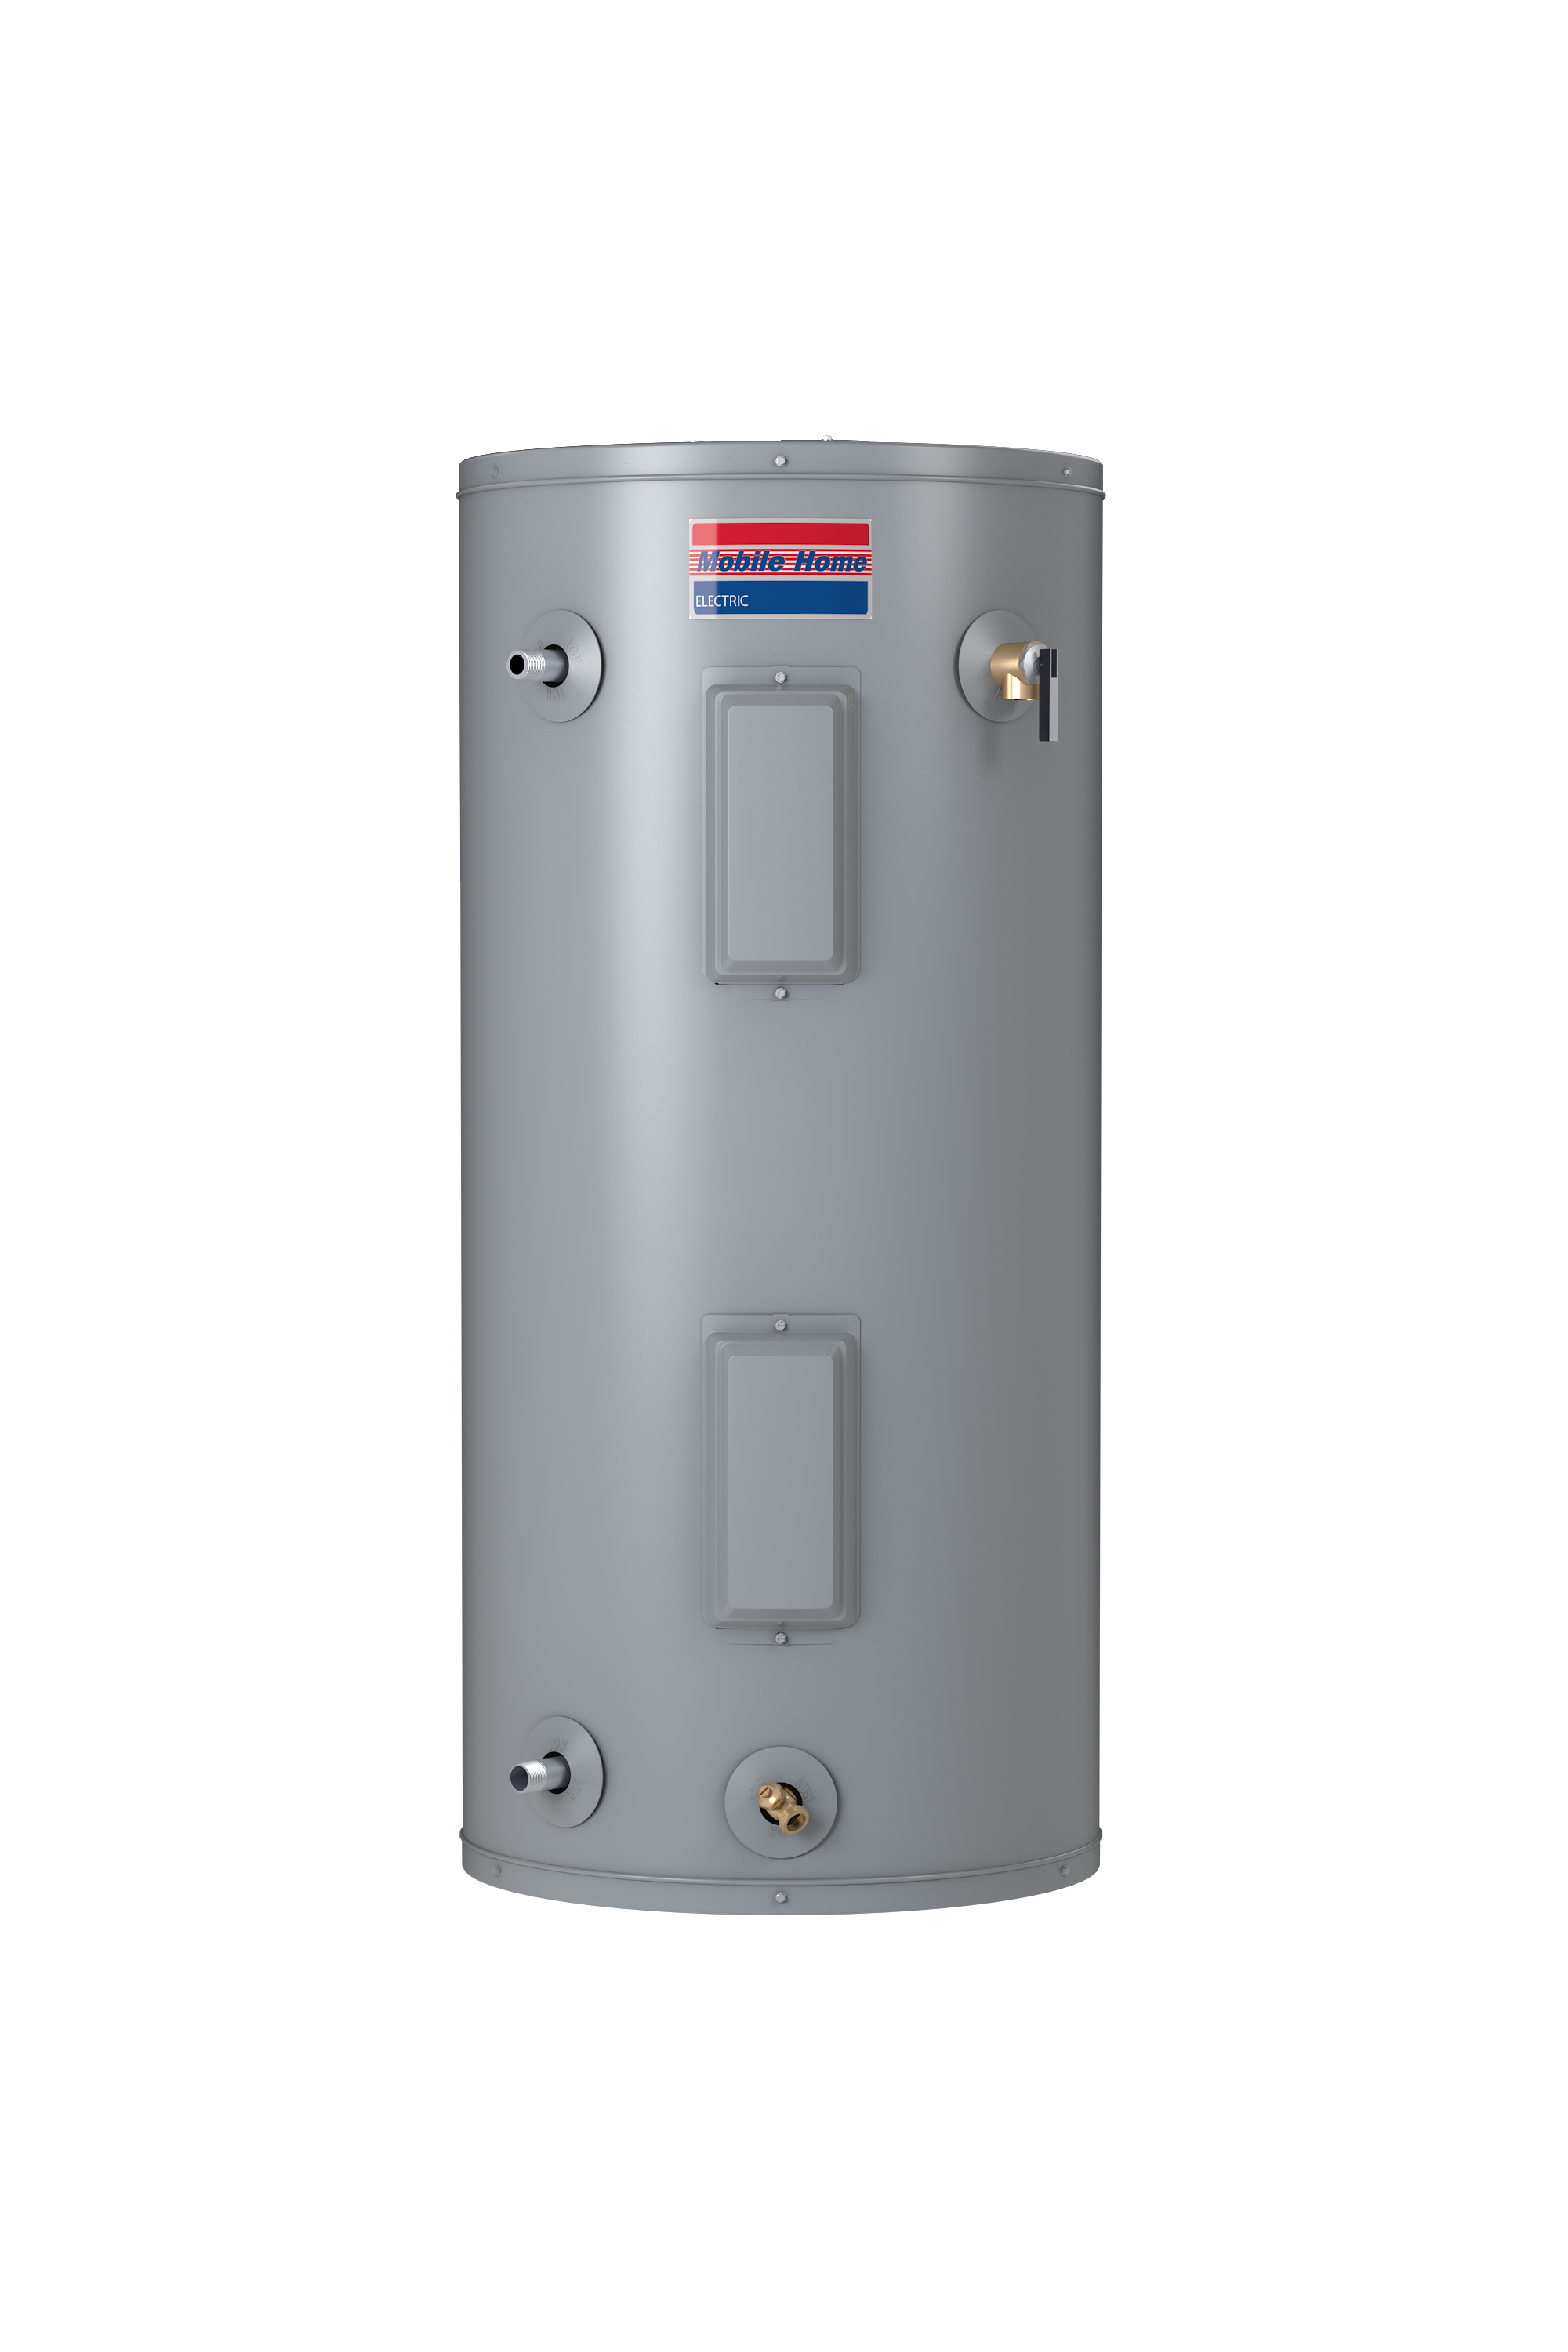 American Water Heaters   Media Bank   American Water Heaters on mobile home hot water tank, mobile home hardwood floors, mobile home security system, mobile home gas heat, mobile home instant water heater, mobile home approved water heaters, whole house gas heater, mobile home water heater replacement, mobile home water heater installation, mobile home water heaters 40 gallon, dyna-glo natural gas wall heater, mobile home storm windows, mobile home aluminum siding, intertherm mobile home water heater, mobile home oil heaters, mobile home intercom, mobile home gas cooktop, mobile home water filter, mobile home electric heater, mobile home water heater elements,